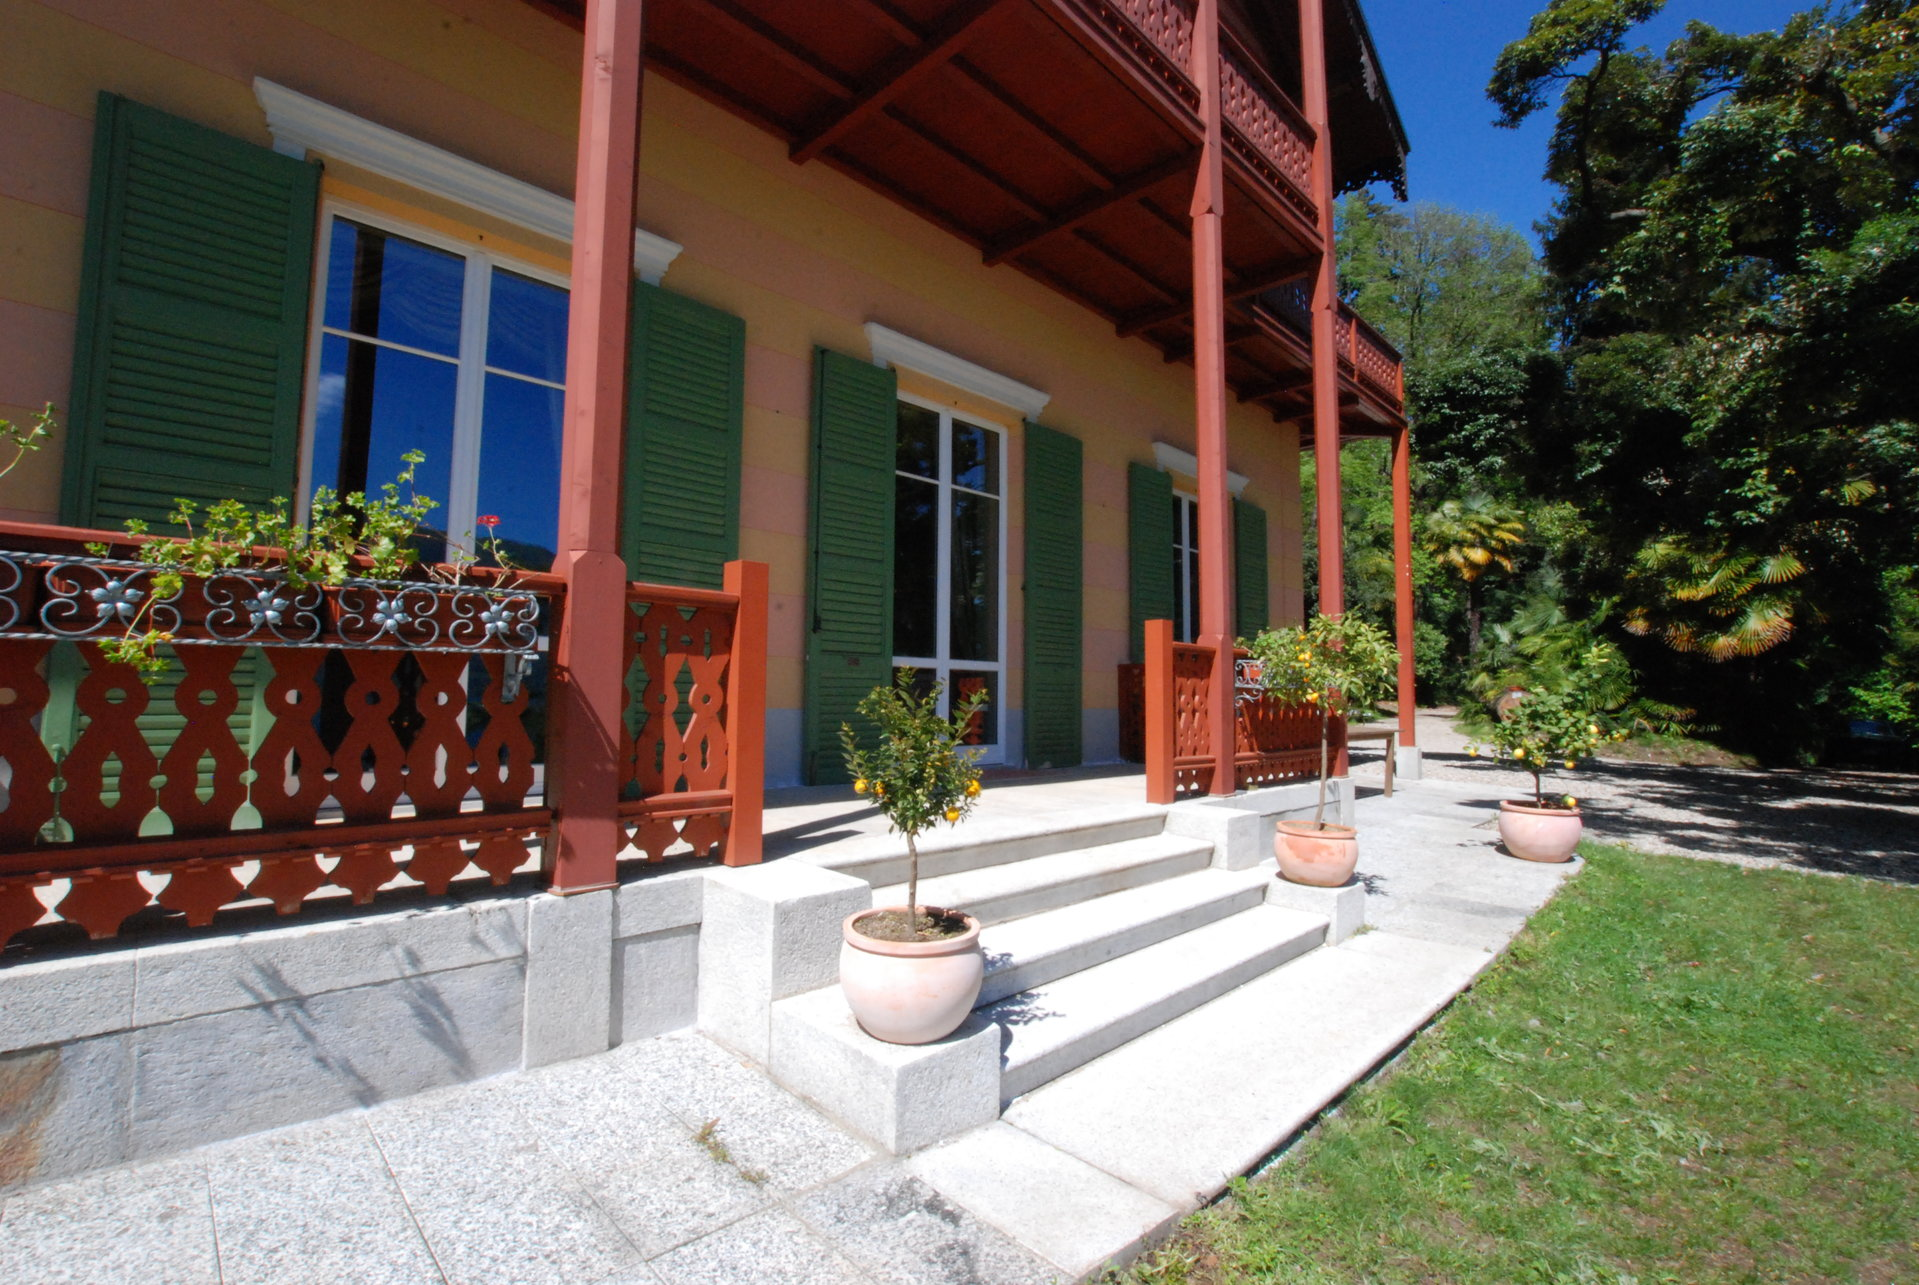 Villa for sale in Ghiffa - entrance